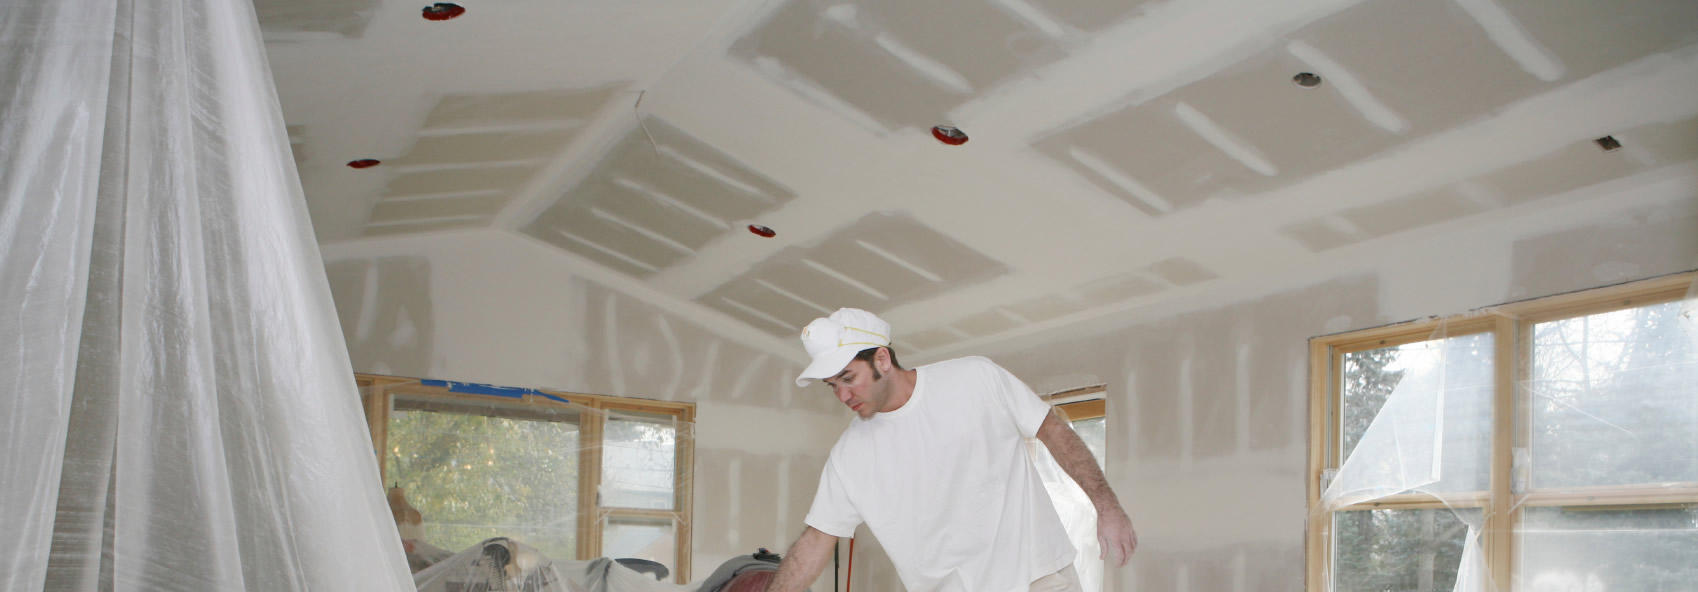 How to hang drywall on a ceiling - How To Hang Drywall On A Ceiling 37